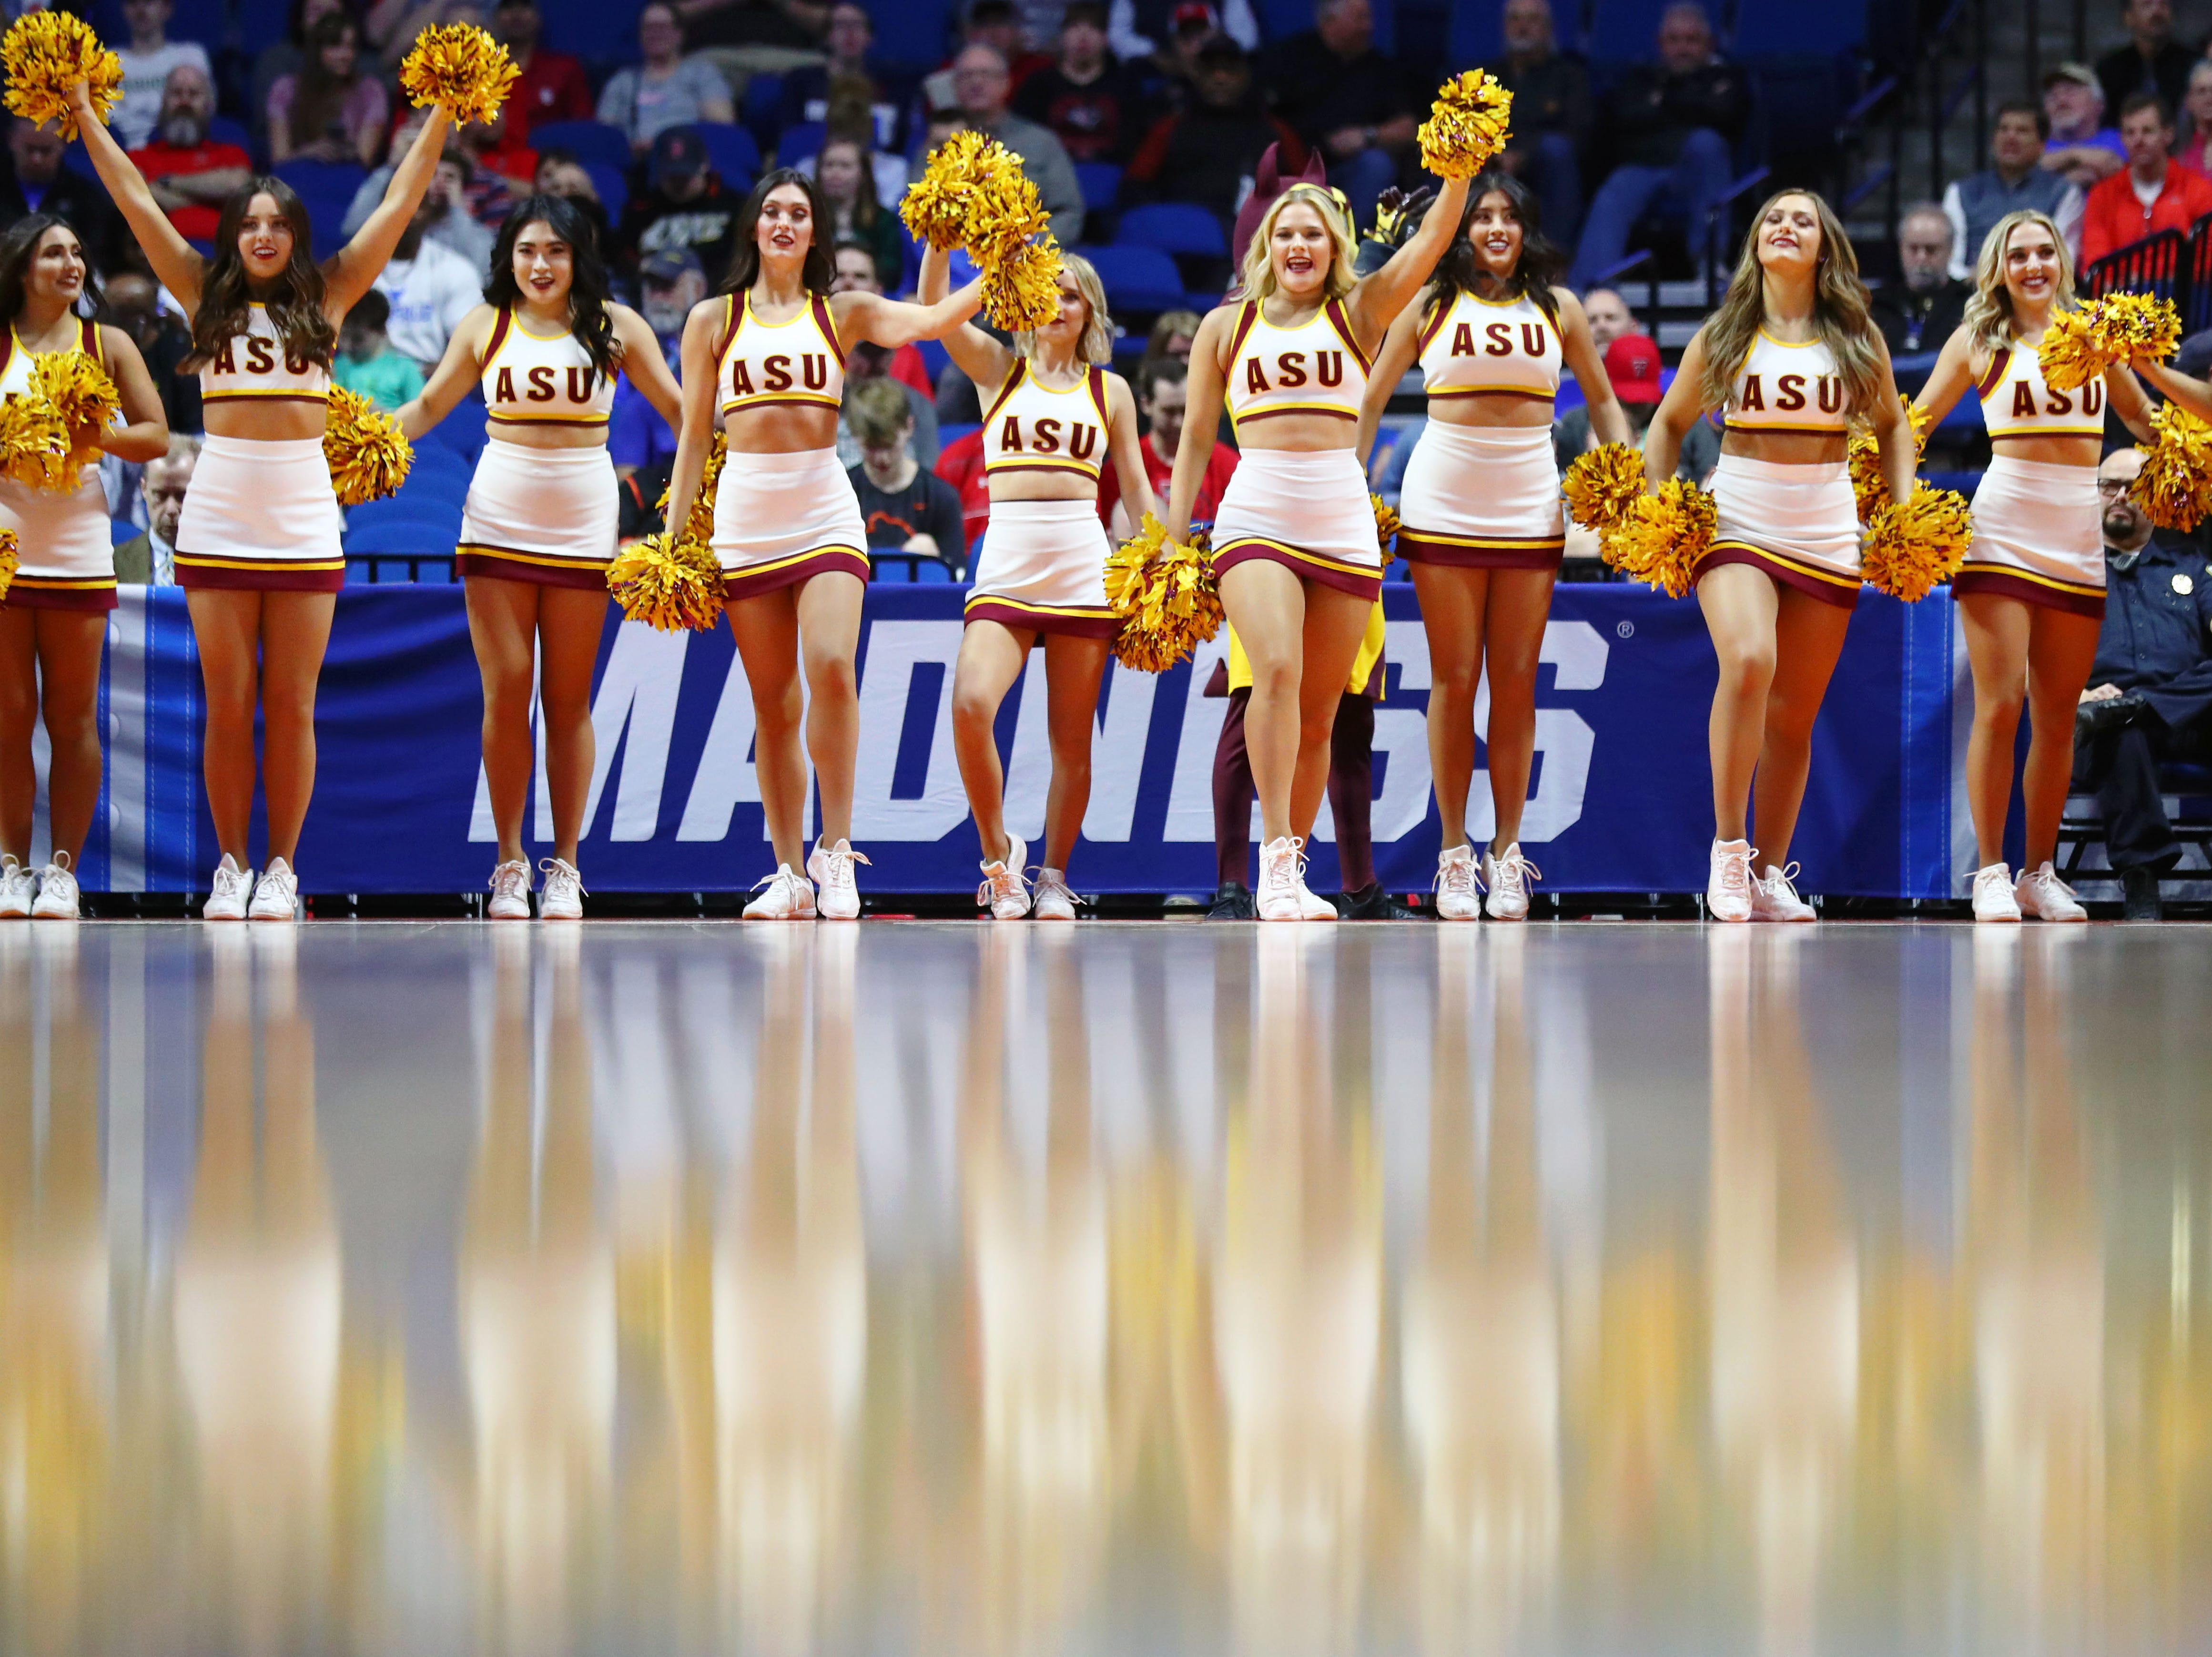 Mar 22, 2019; Tulsa, OK, USA; The Arizona State Sun Devils cheerleaders perform before the start of their game against the Buffalo Bulls in the first round of the 2019 NCAA Tournament at BOK Center. Mandatory Credit: Mark J. Rebilas-USA TODAY Sports